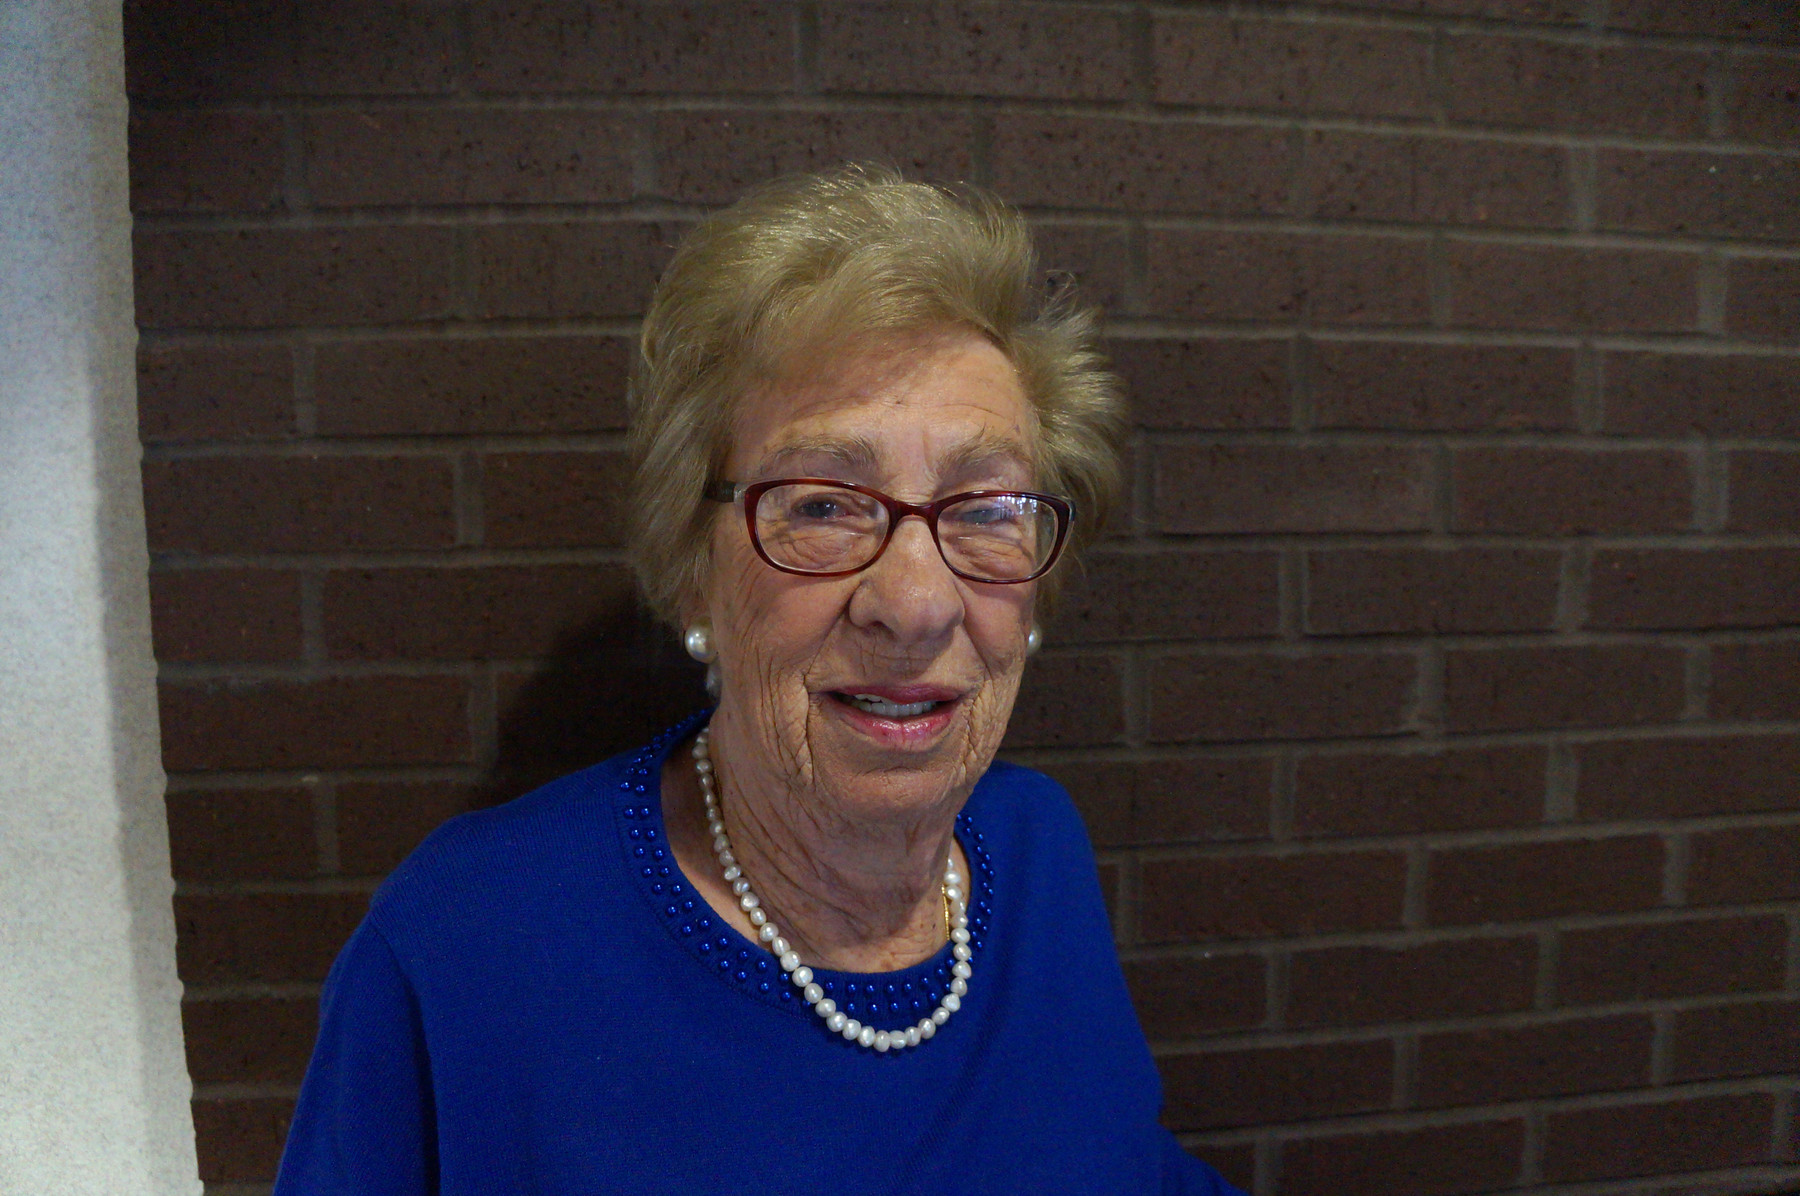 Close-up portrait of Eva Schloss at Viterbo University in La Crosse, WI.